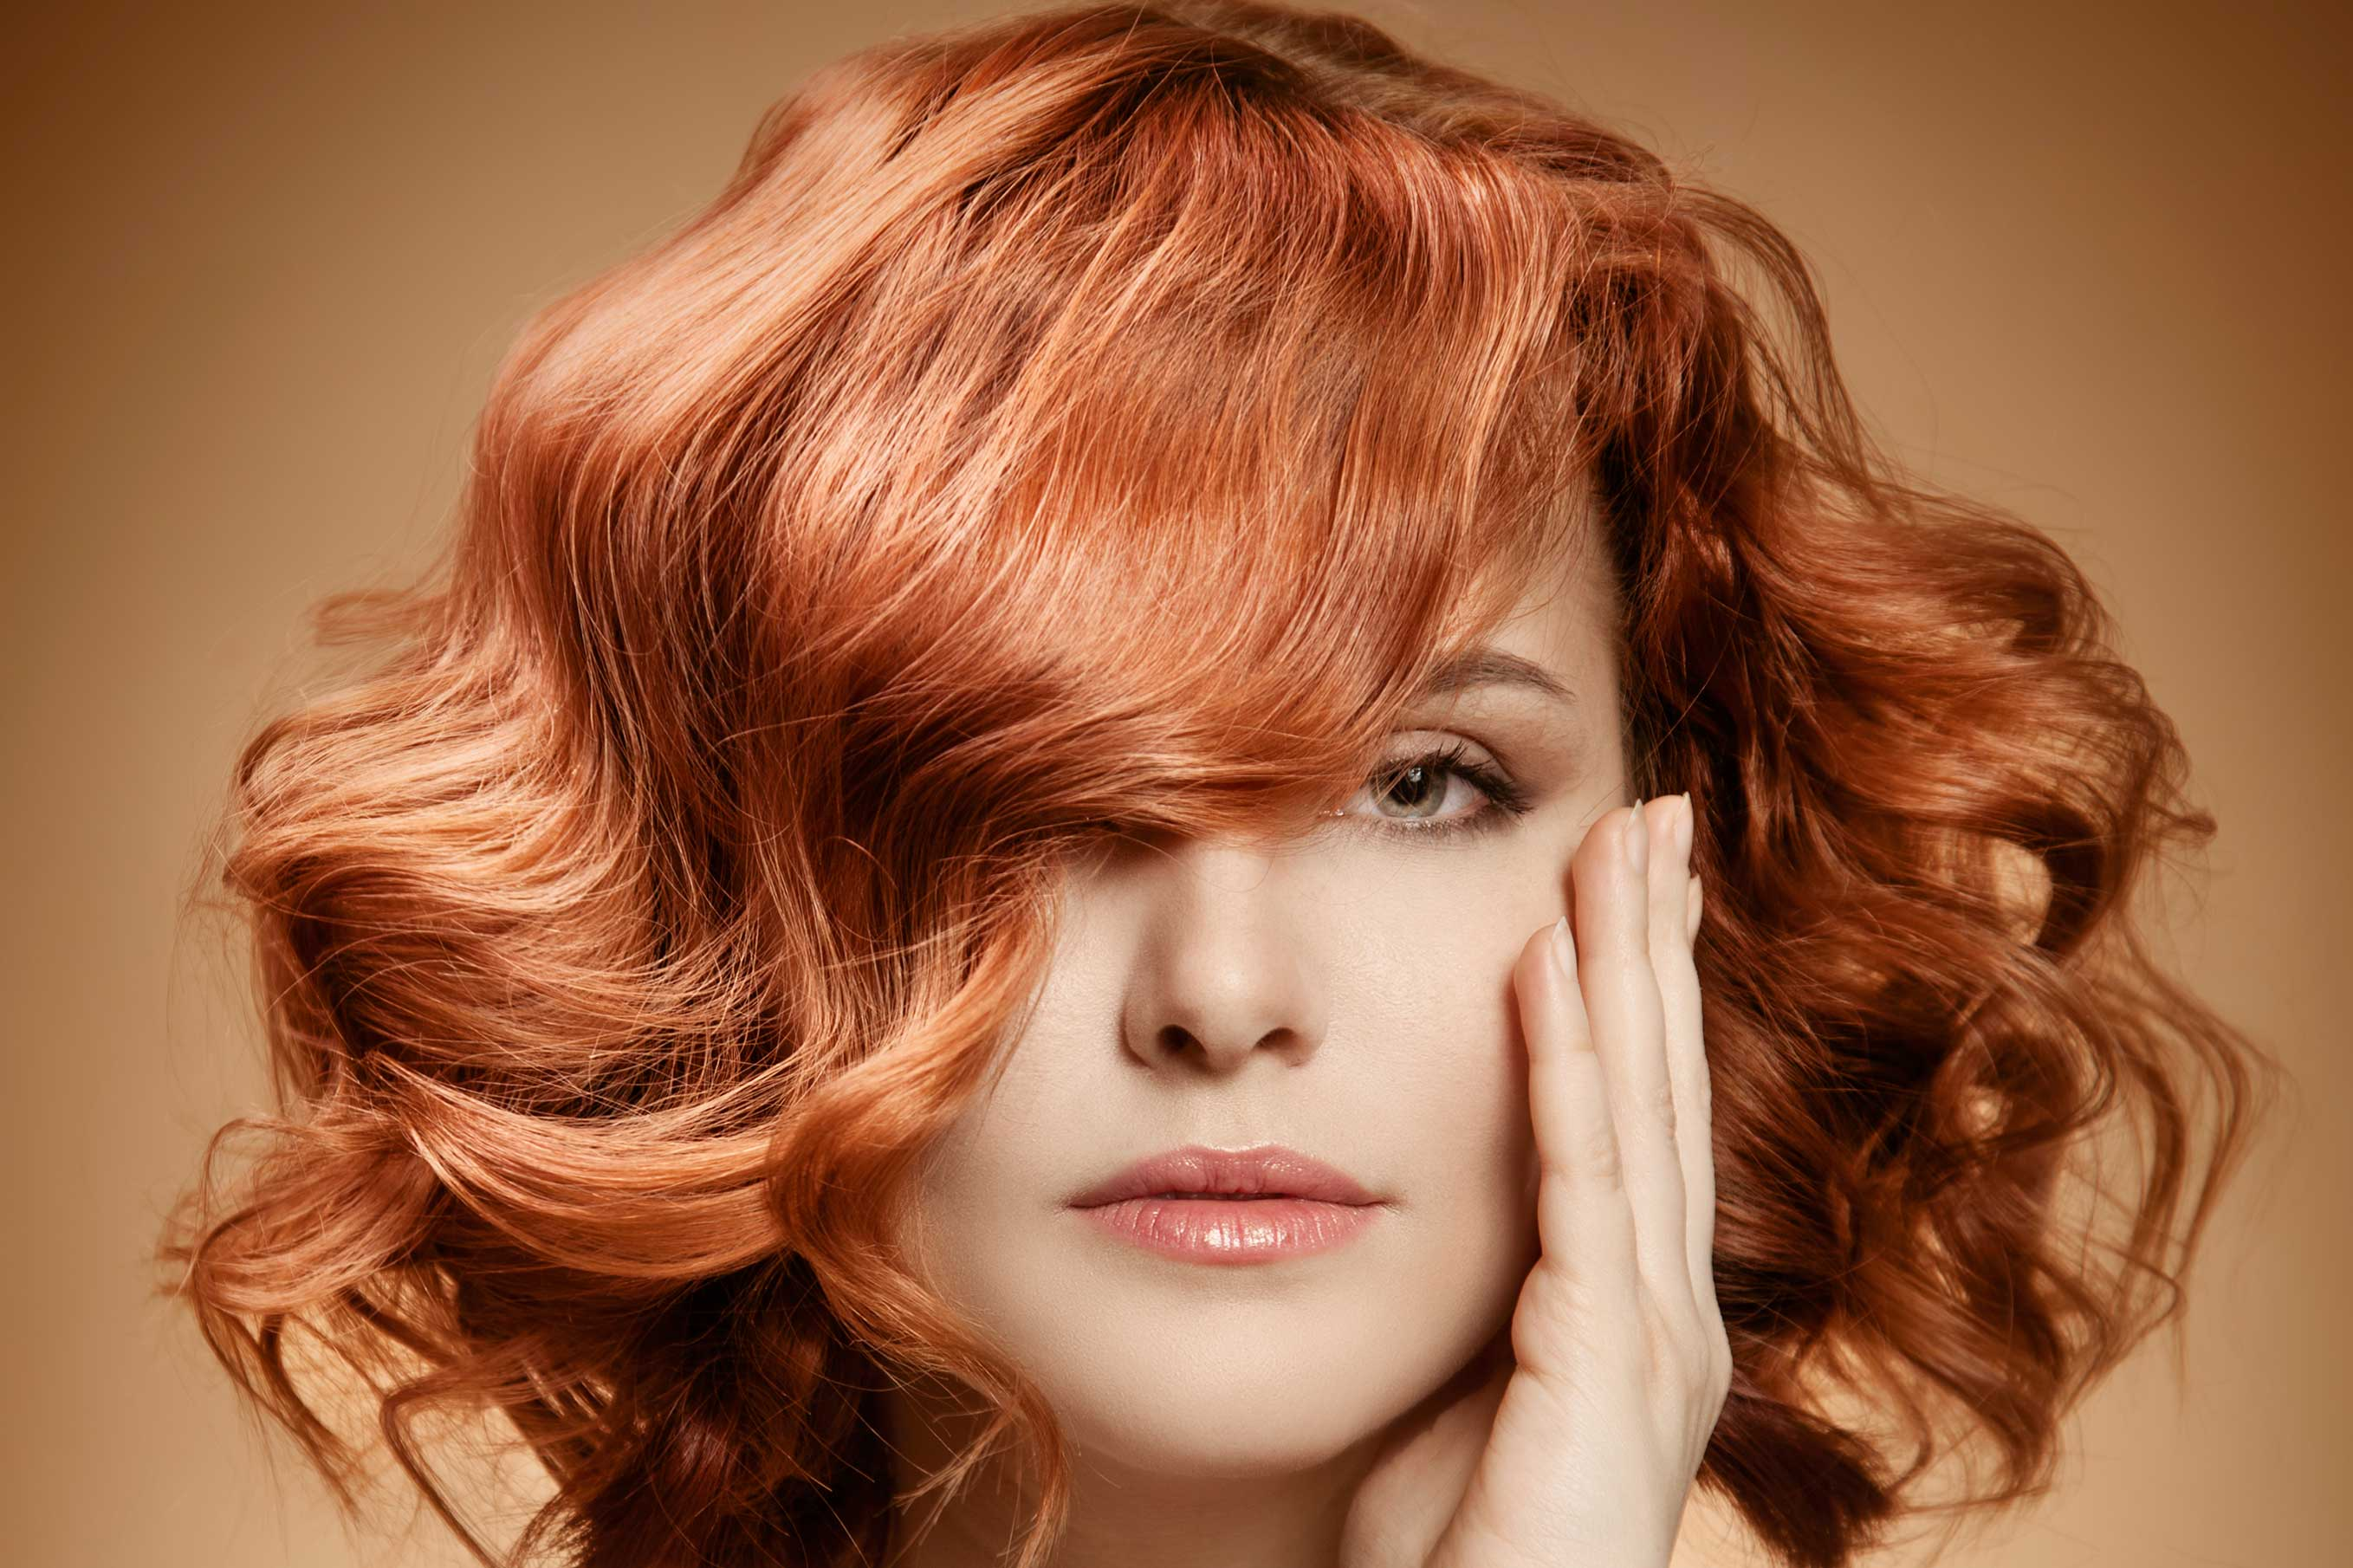 Salon Hair Highlight Salon Boston Hair Nail And Spa Downtown Boston